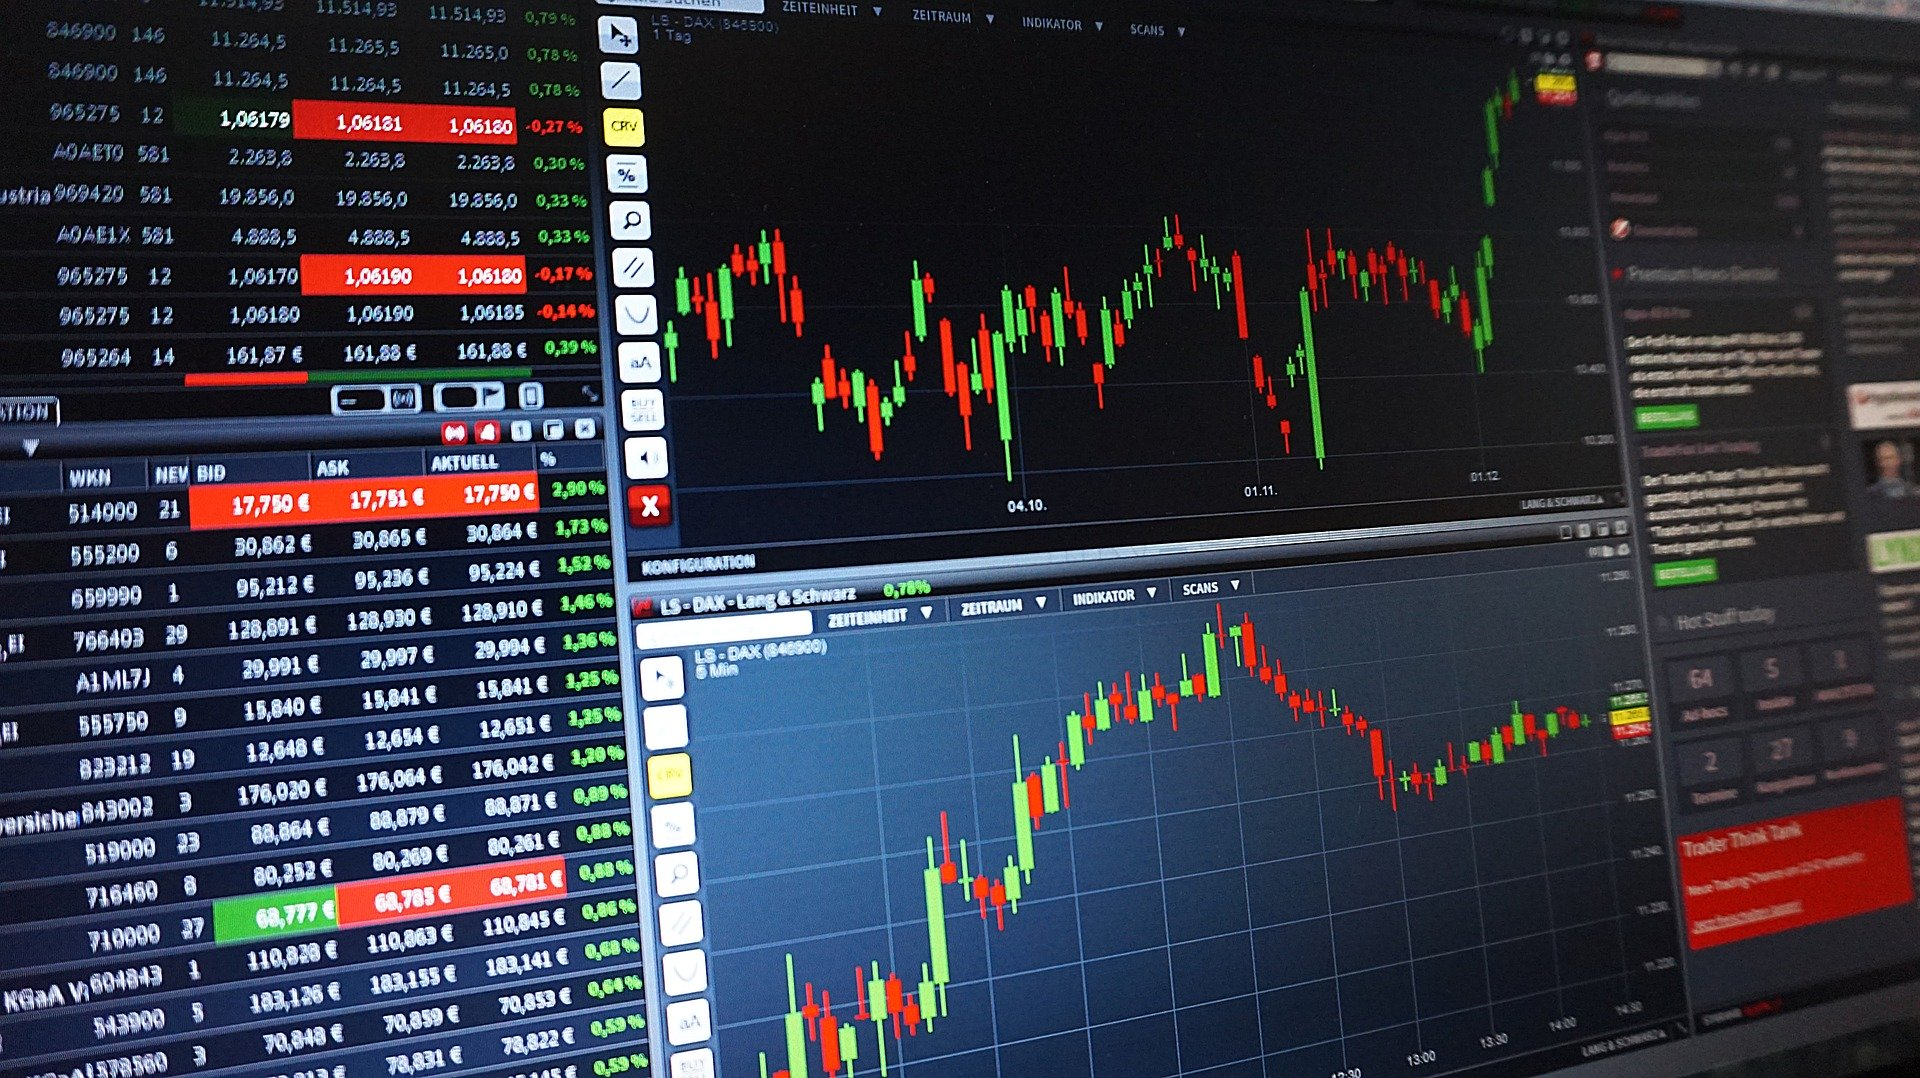 Definition of Demat & Trading Account, their usage and differences